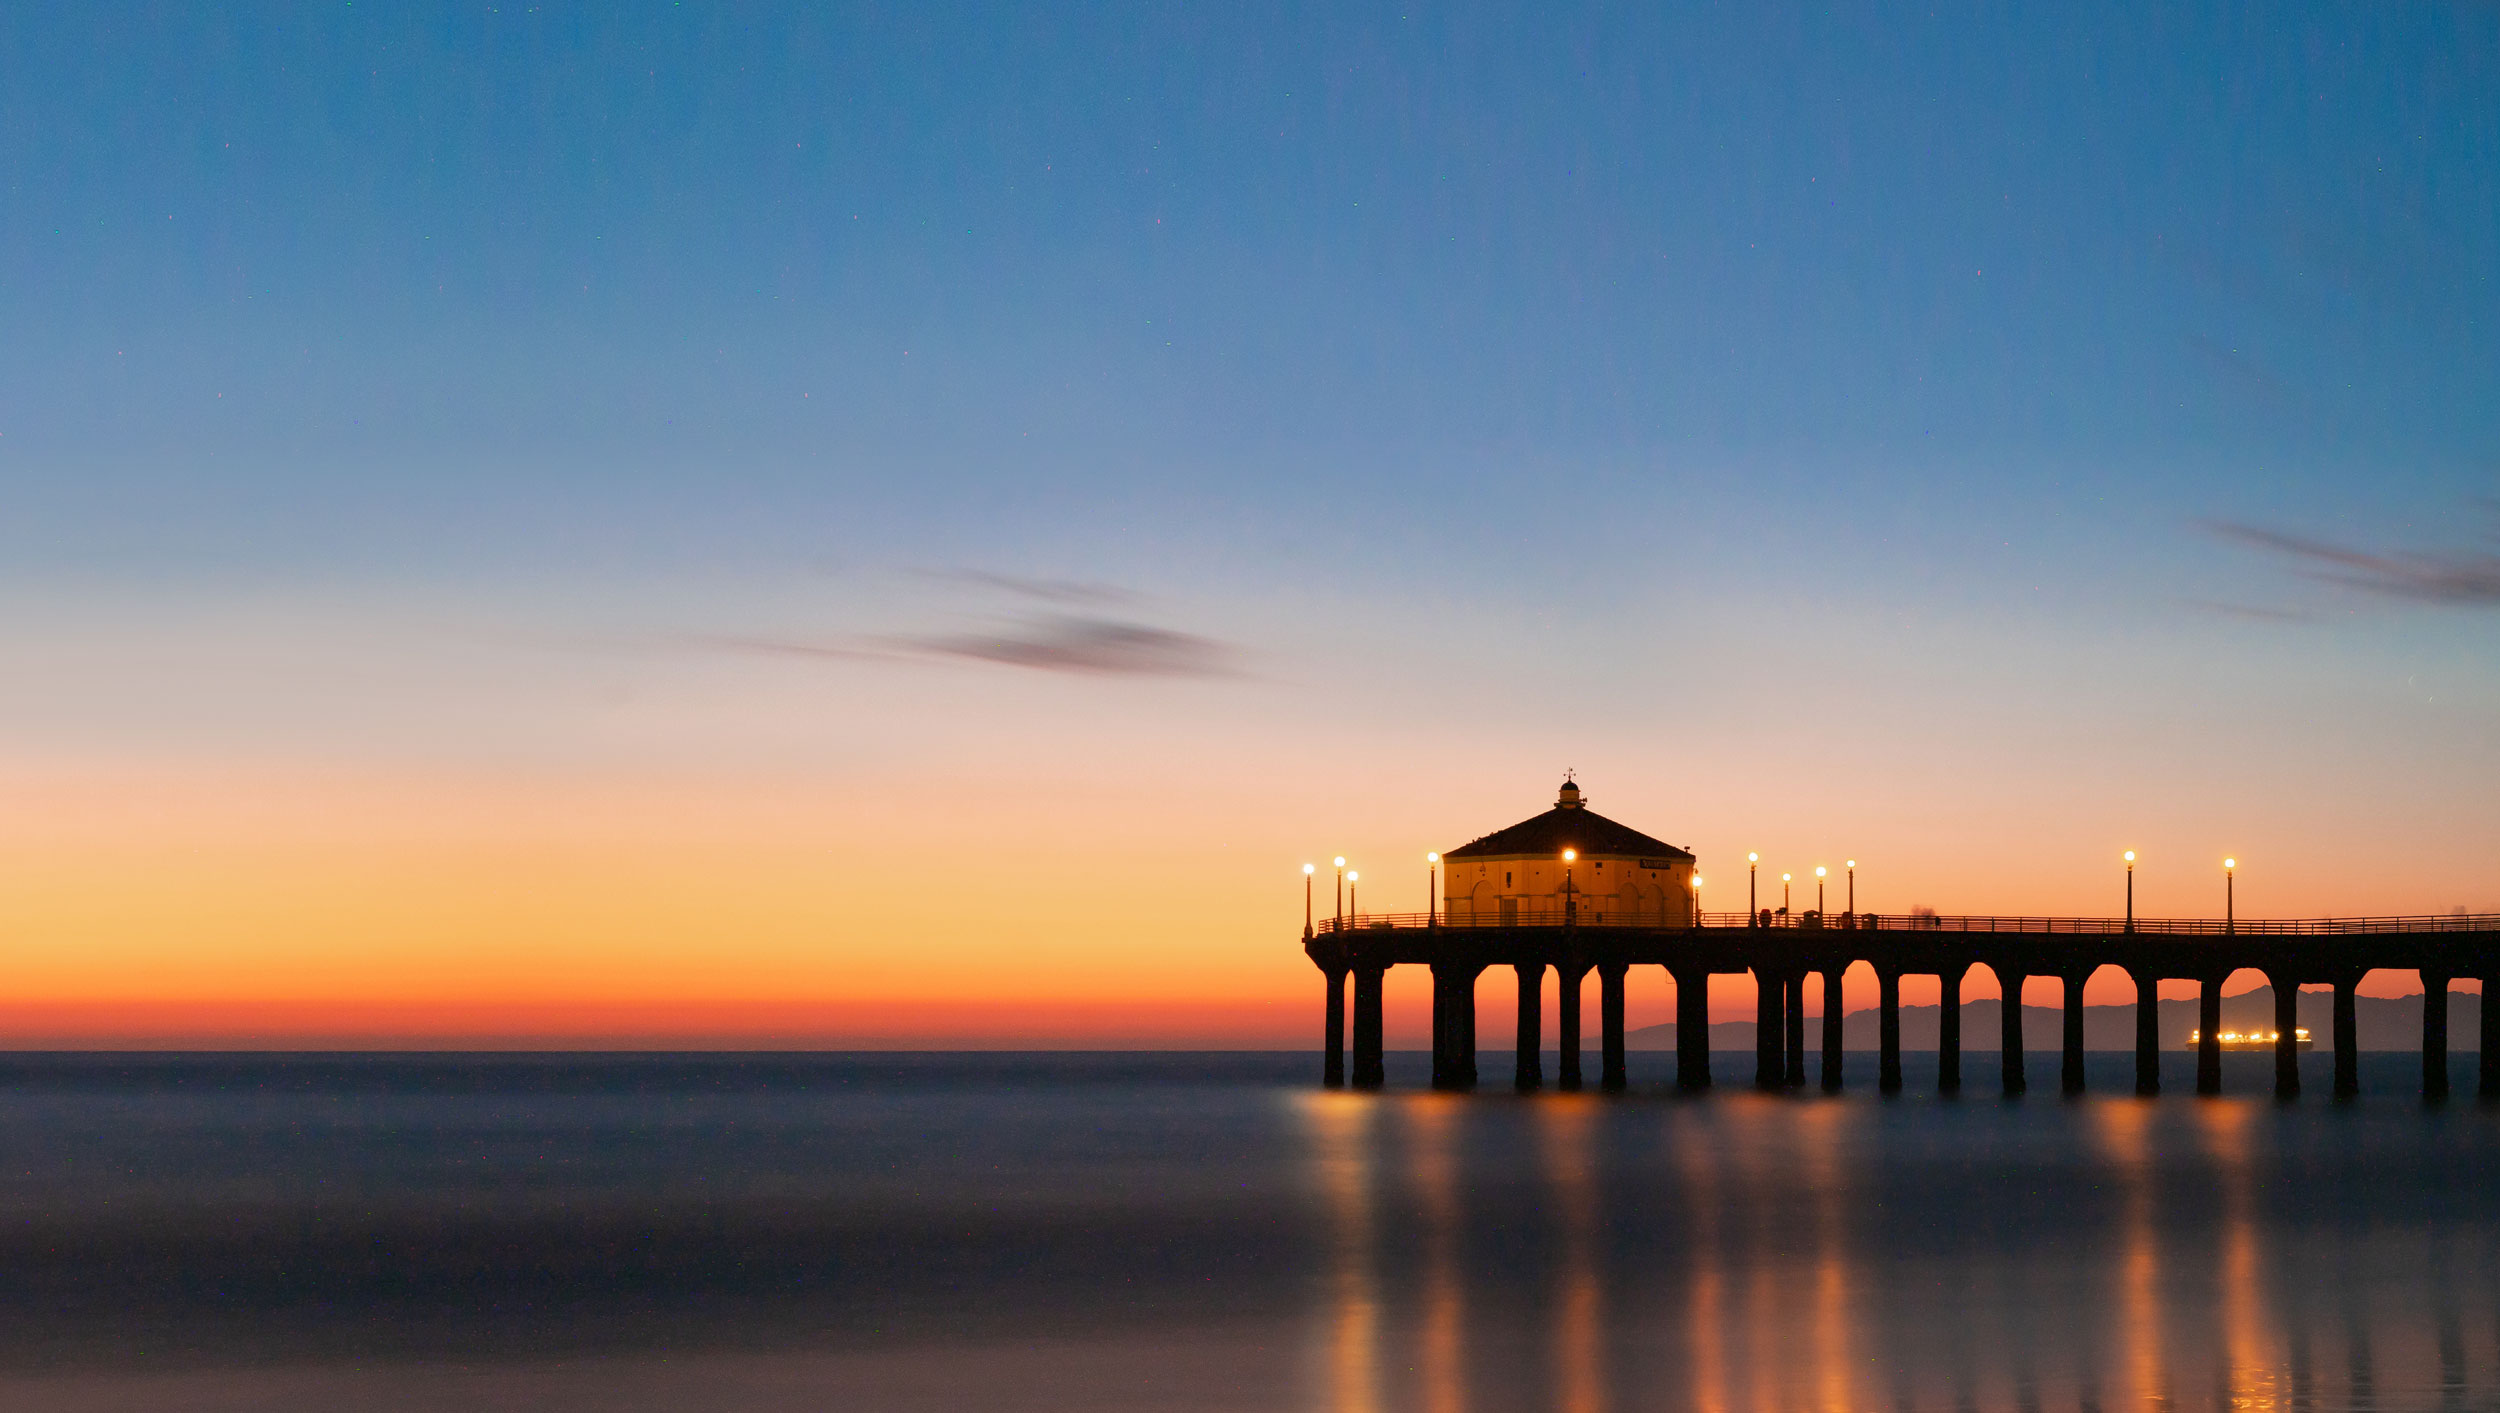 The Manhattan Beach Pier and Roundhouse at sunset.